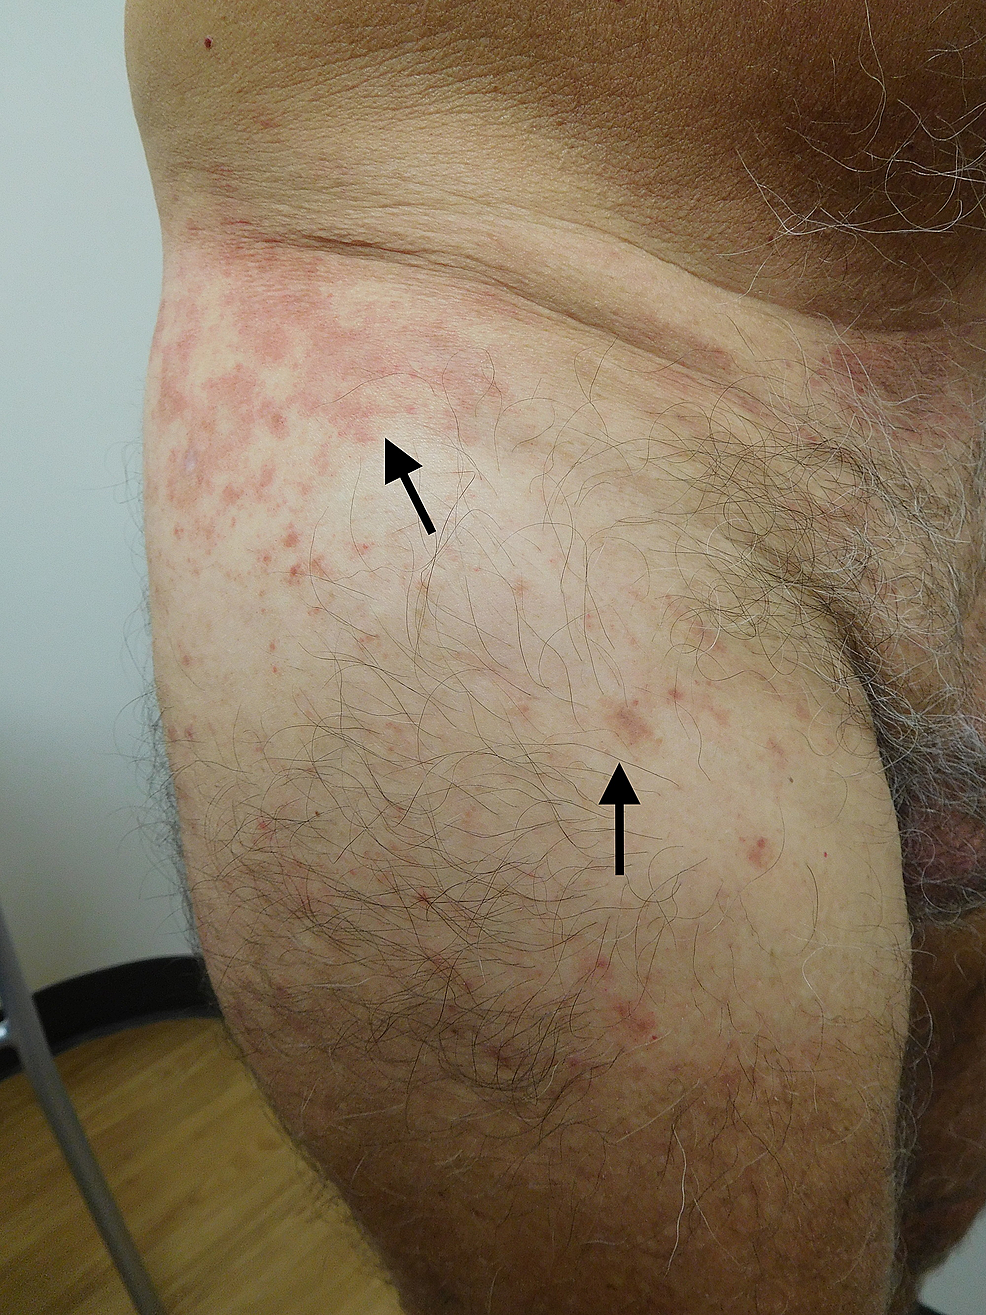 Testopel-associated-dermatitis-on-lateral-and-anterior-right-thigh